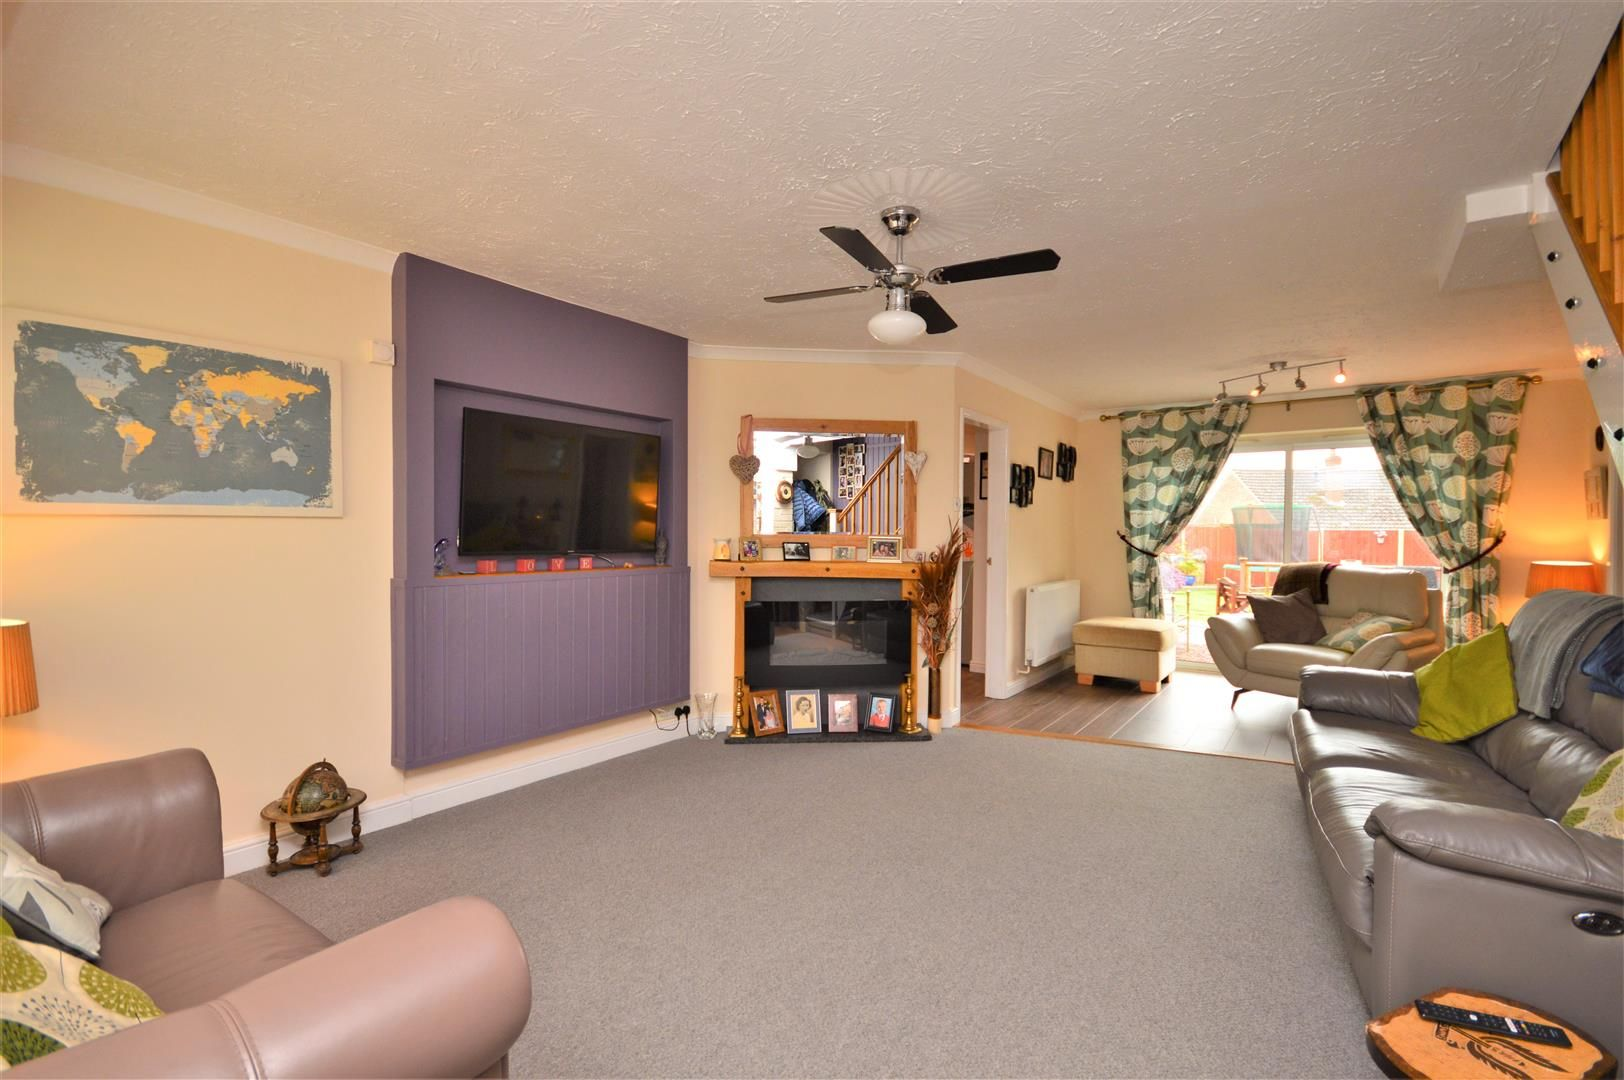 4 bed semi-detached for sale in Clehonger 4